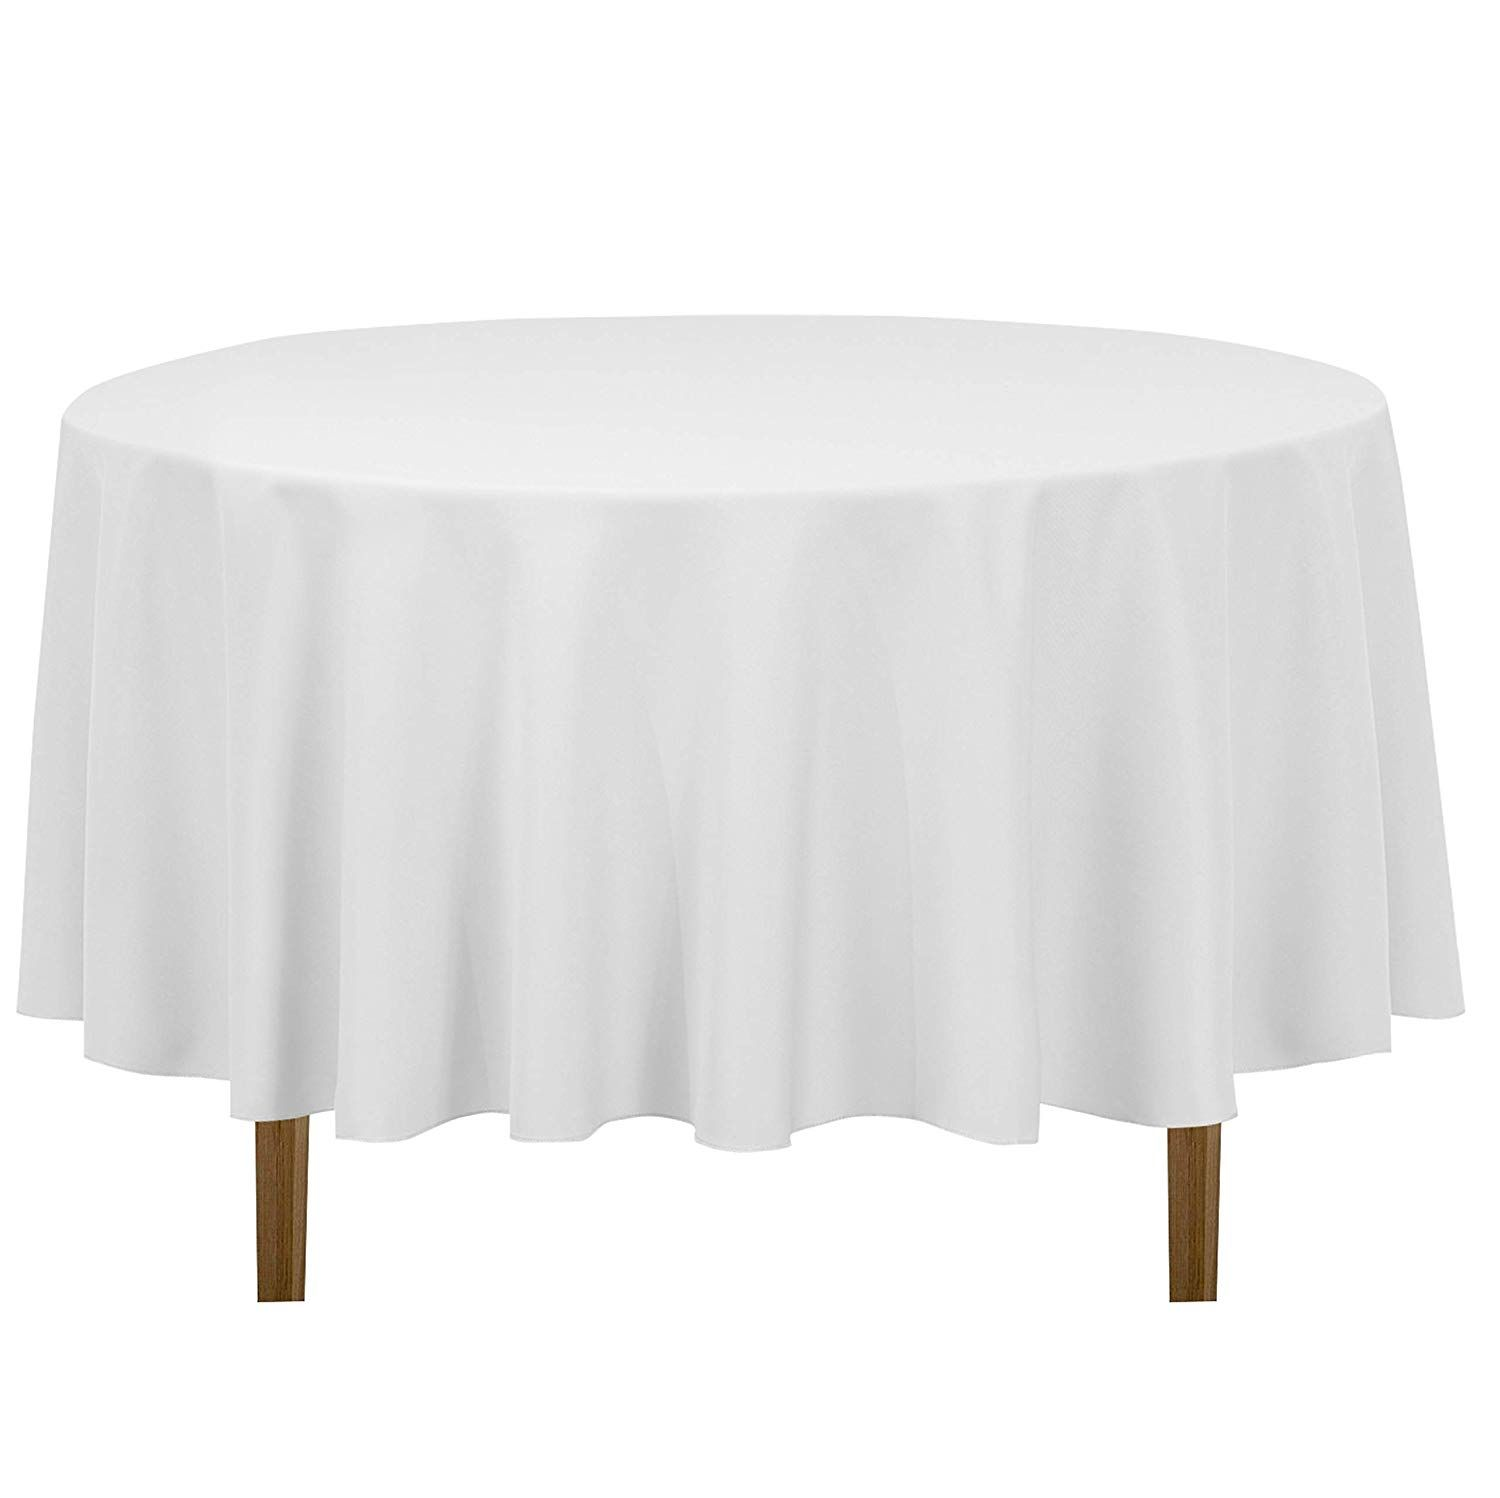 108 Inch White 108 Inch Round Tablecloths Table Cloth 90 Round Tablecloths